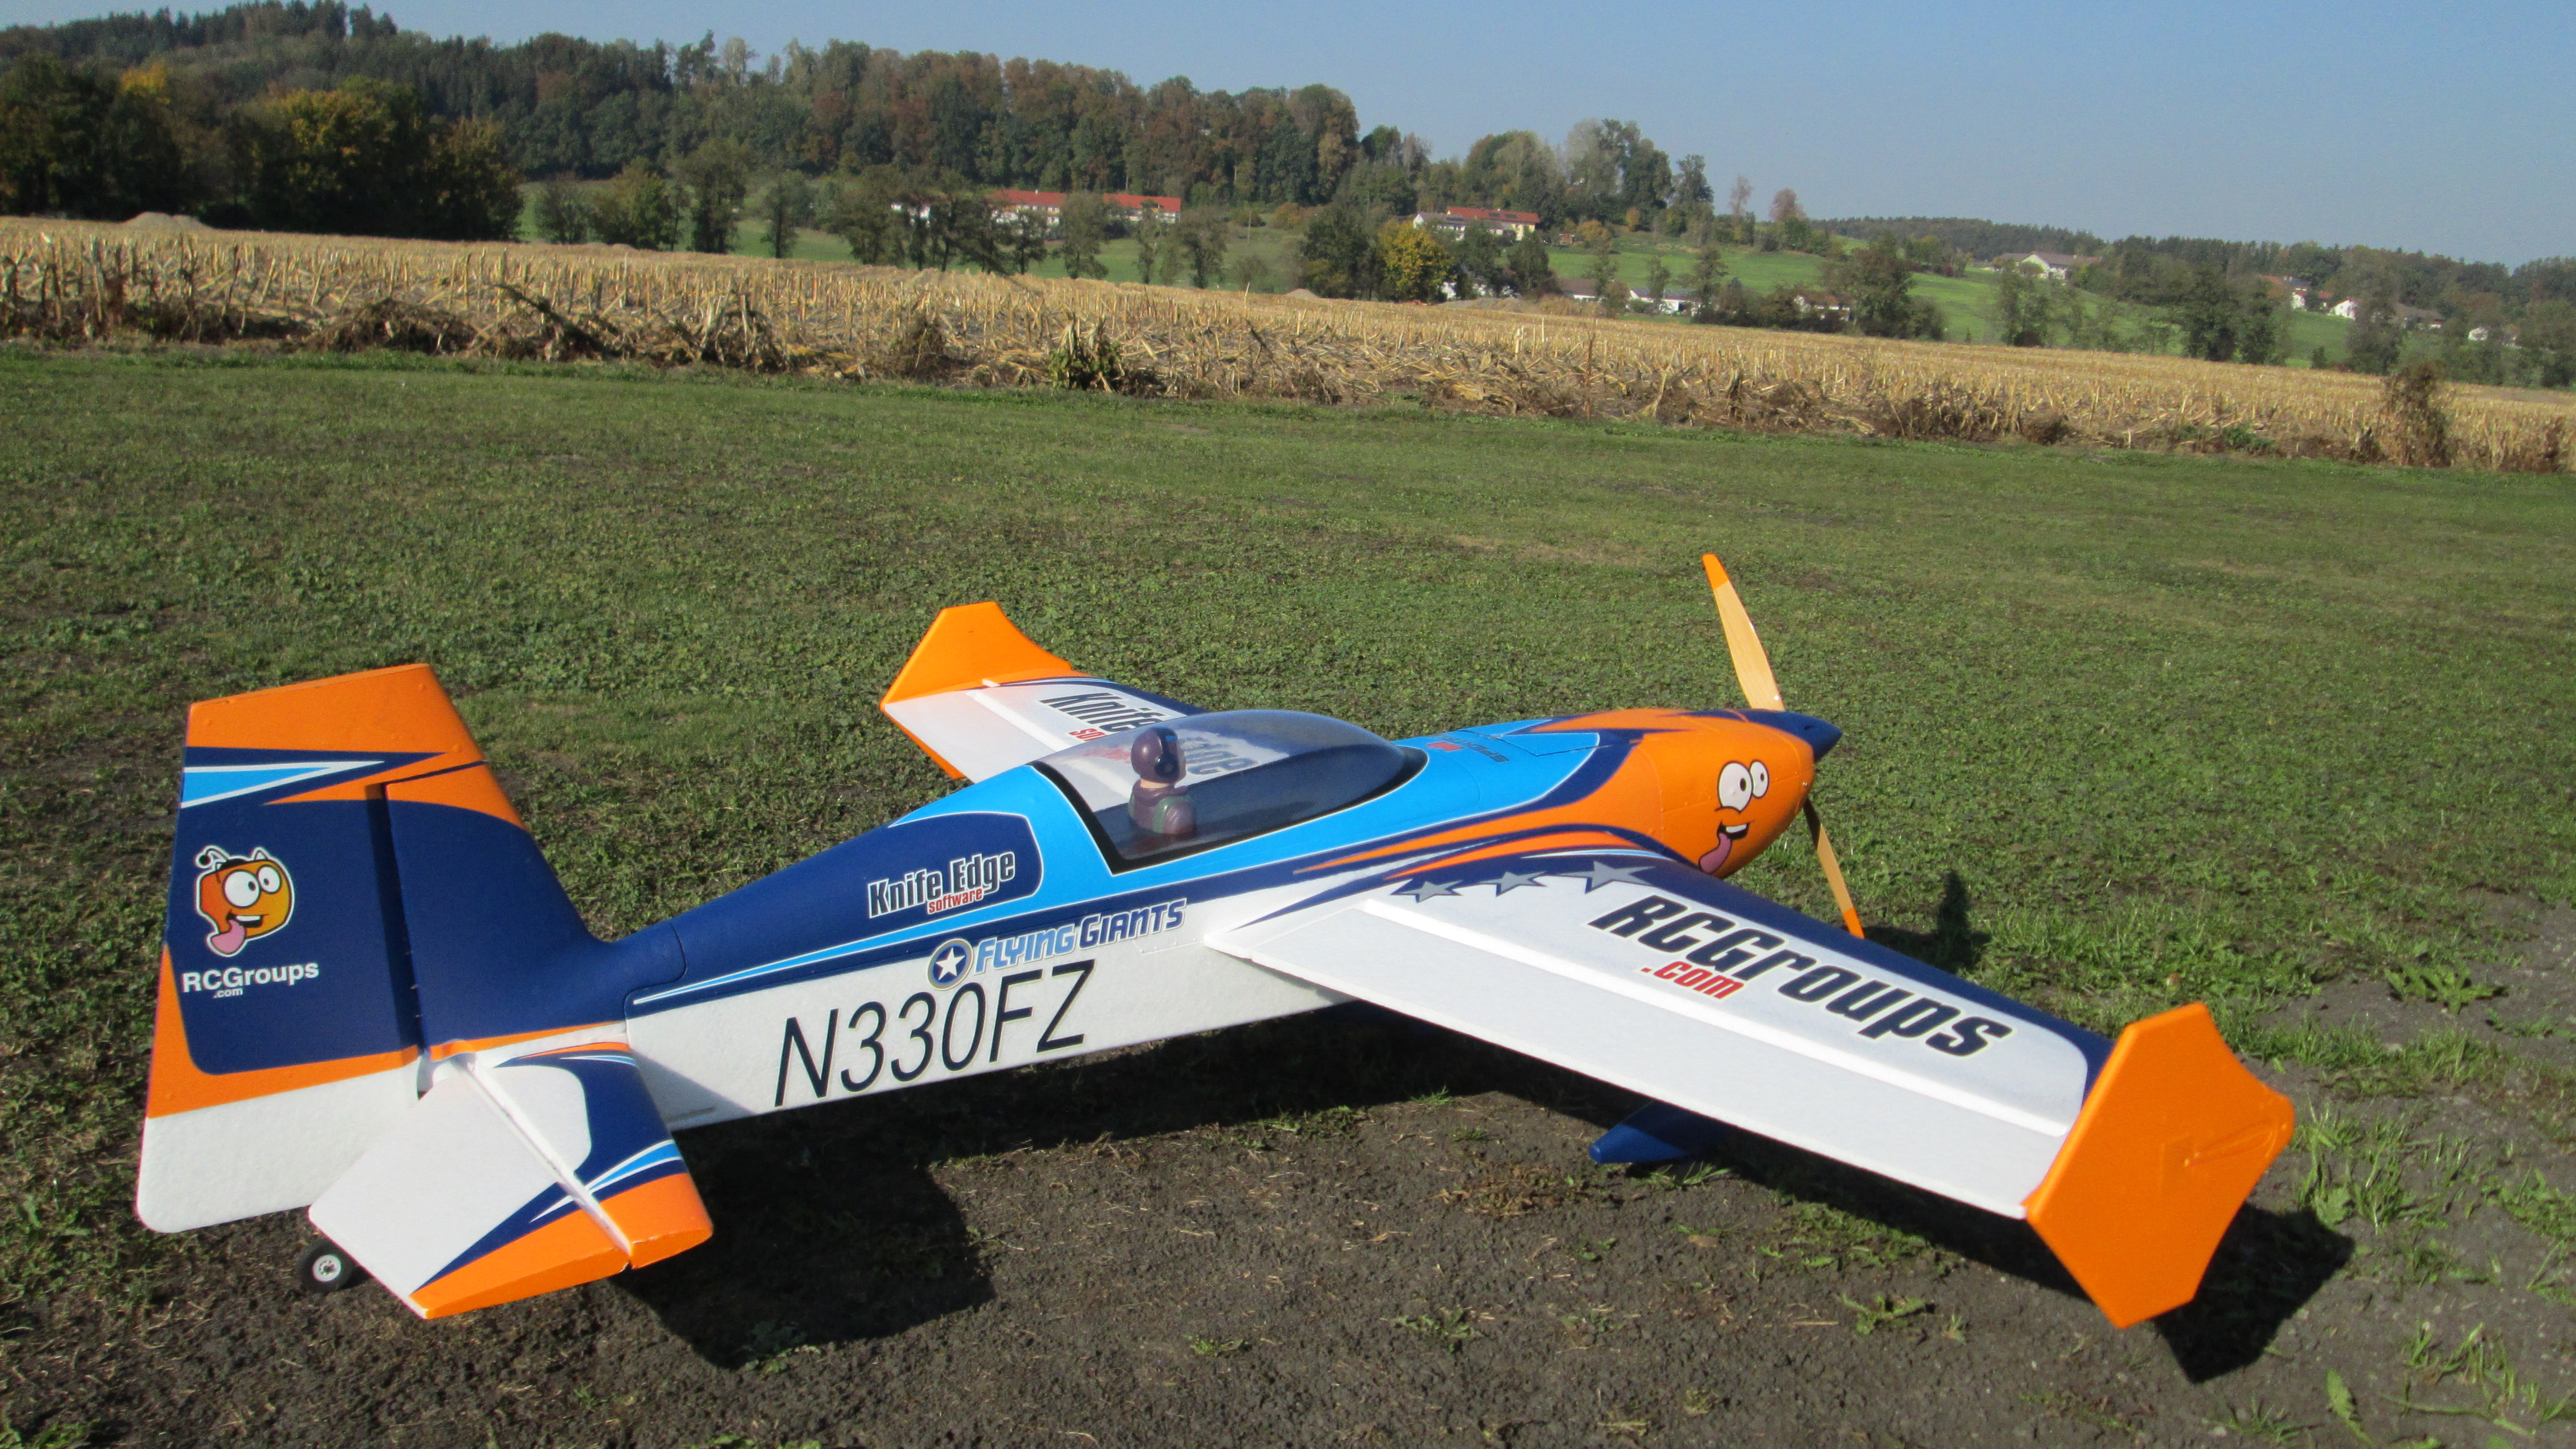 Avios RC Groups Extra 330LX 1420mm (56